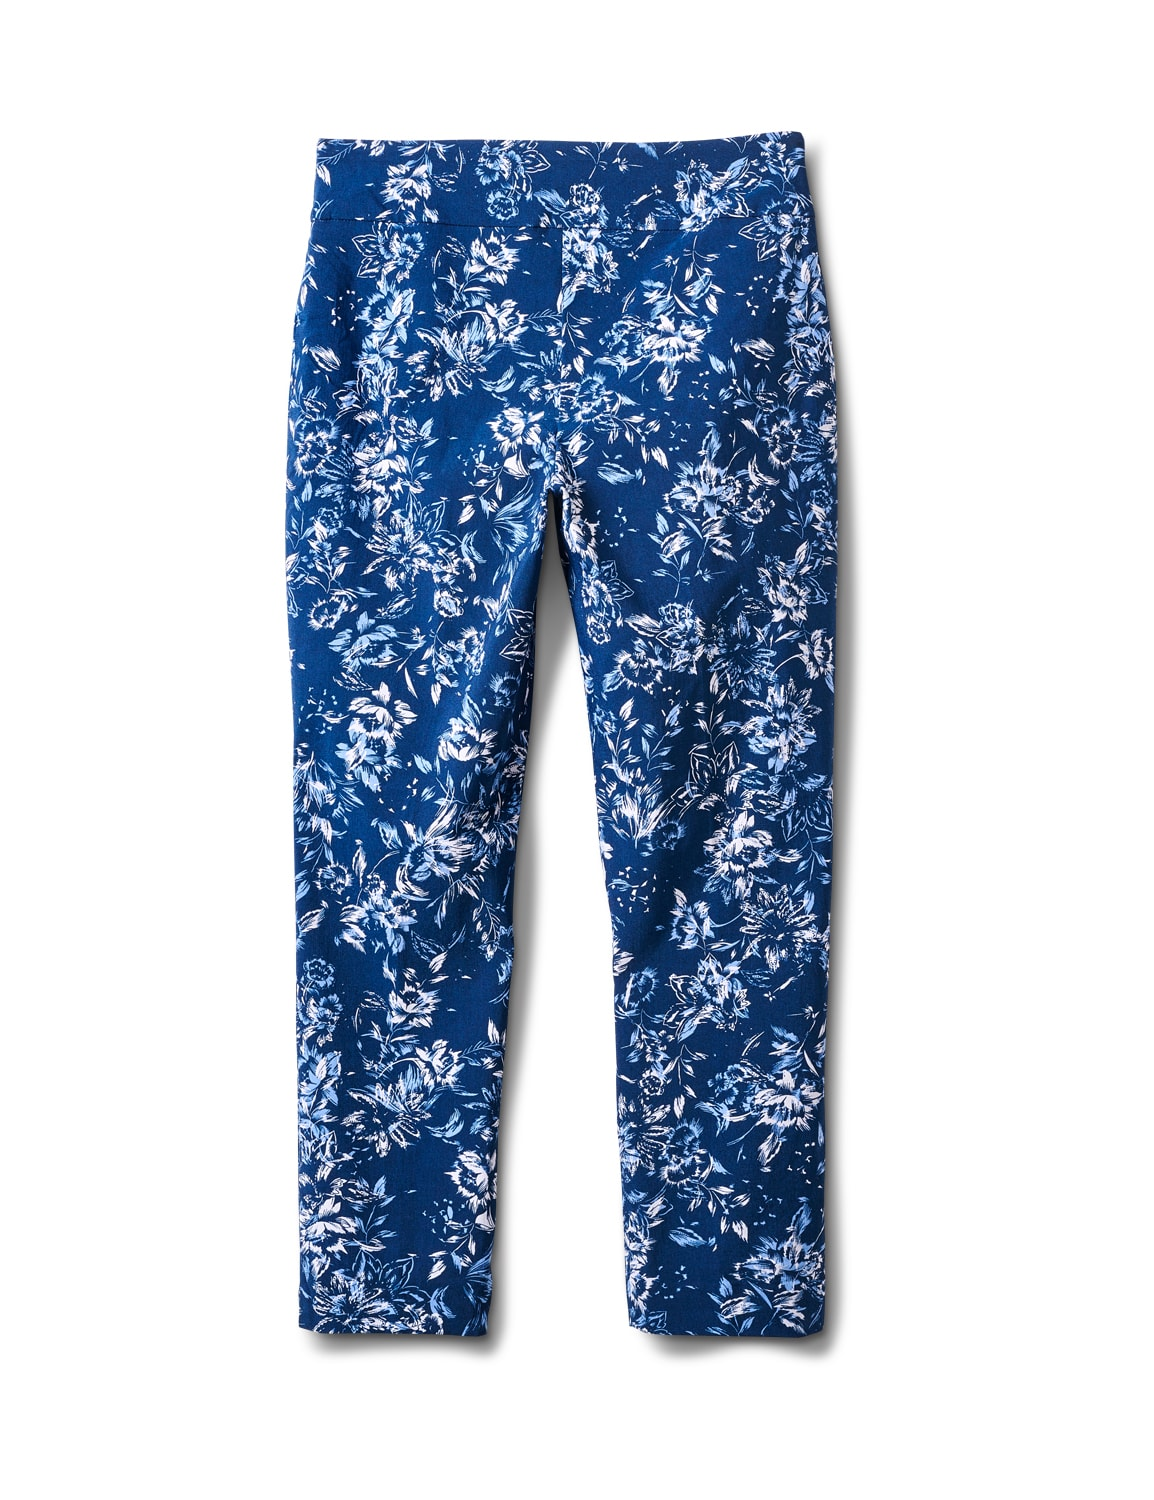 Pull On Floral print Ankle Pants - Blue Floral - Back